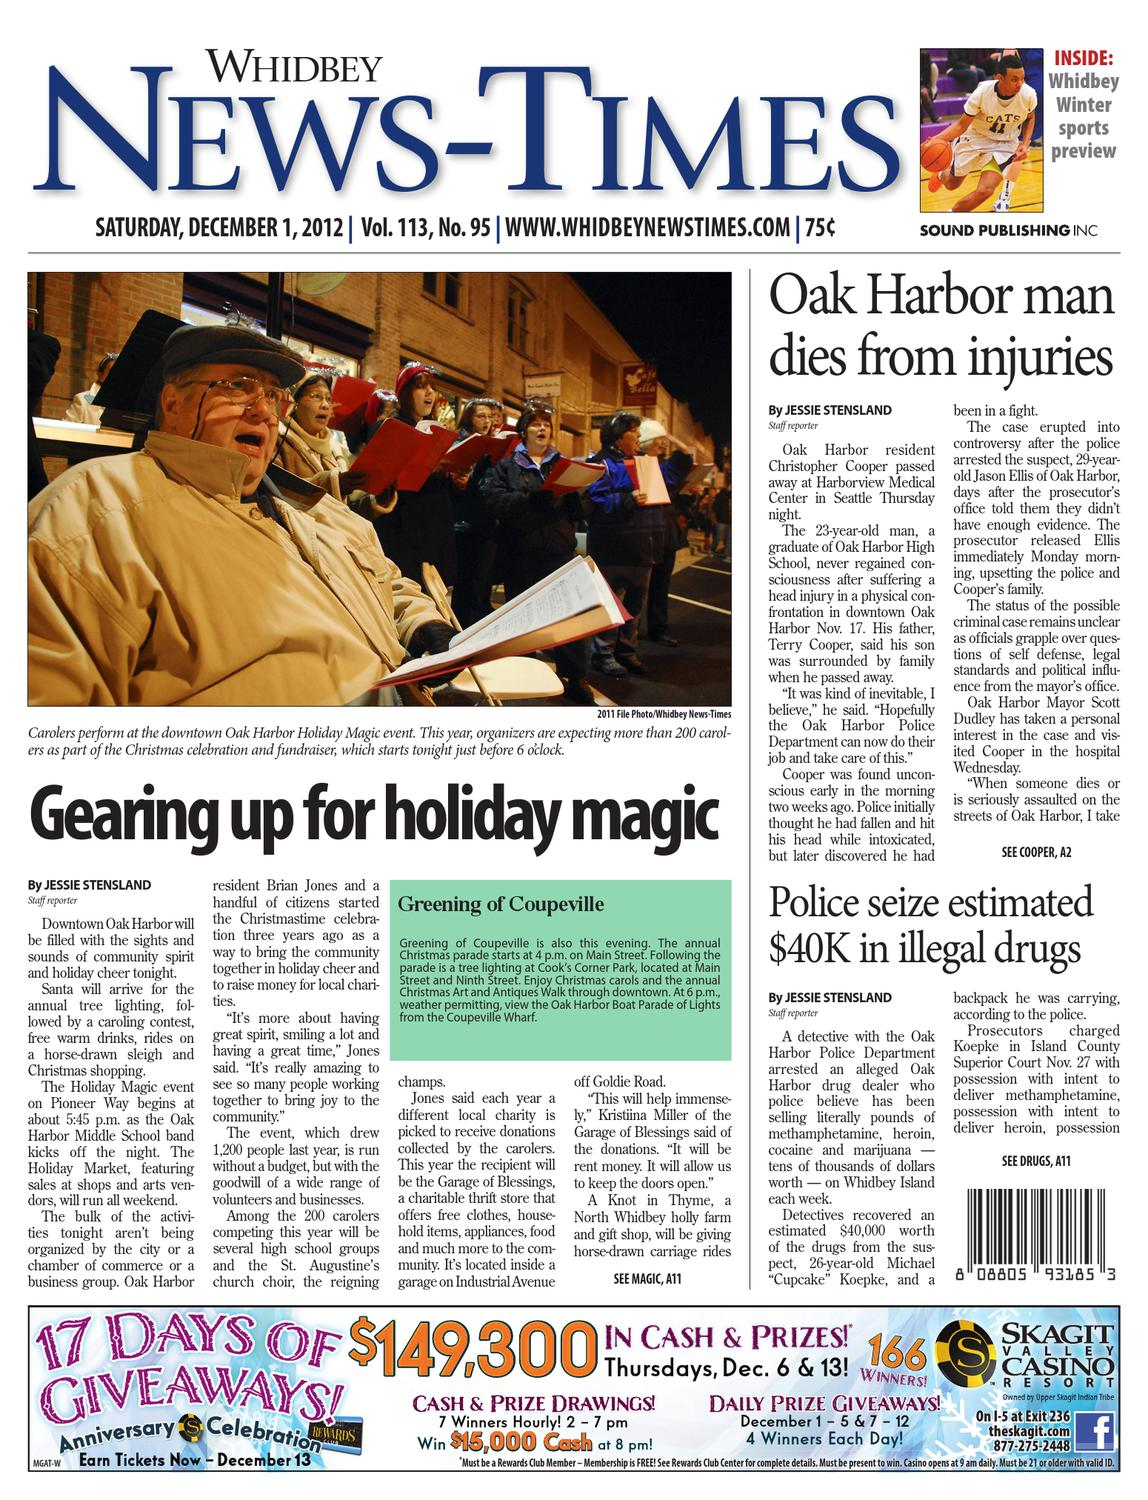 Whidbey News Times December 01 2012 By Sound Publishing